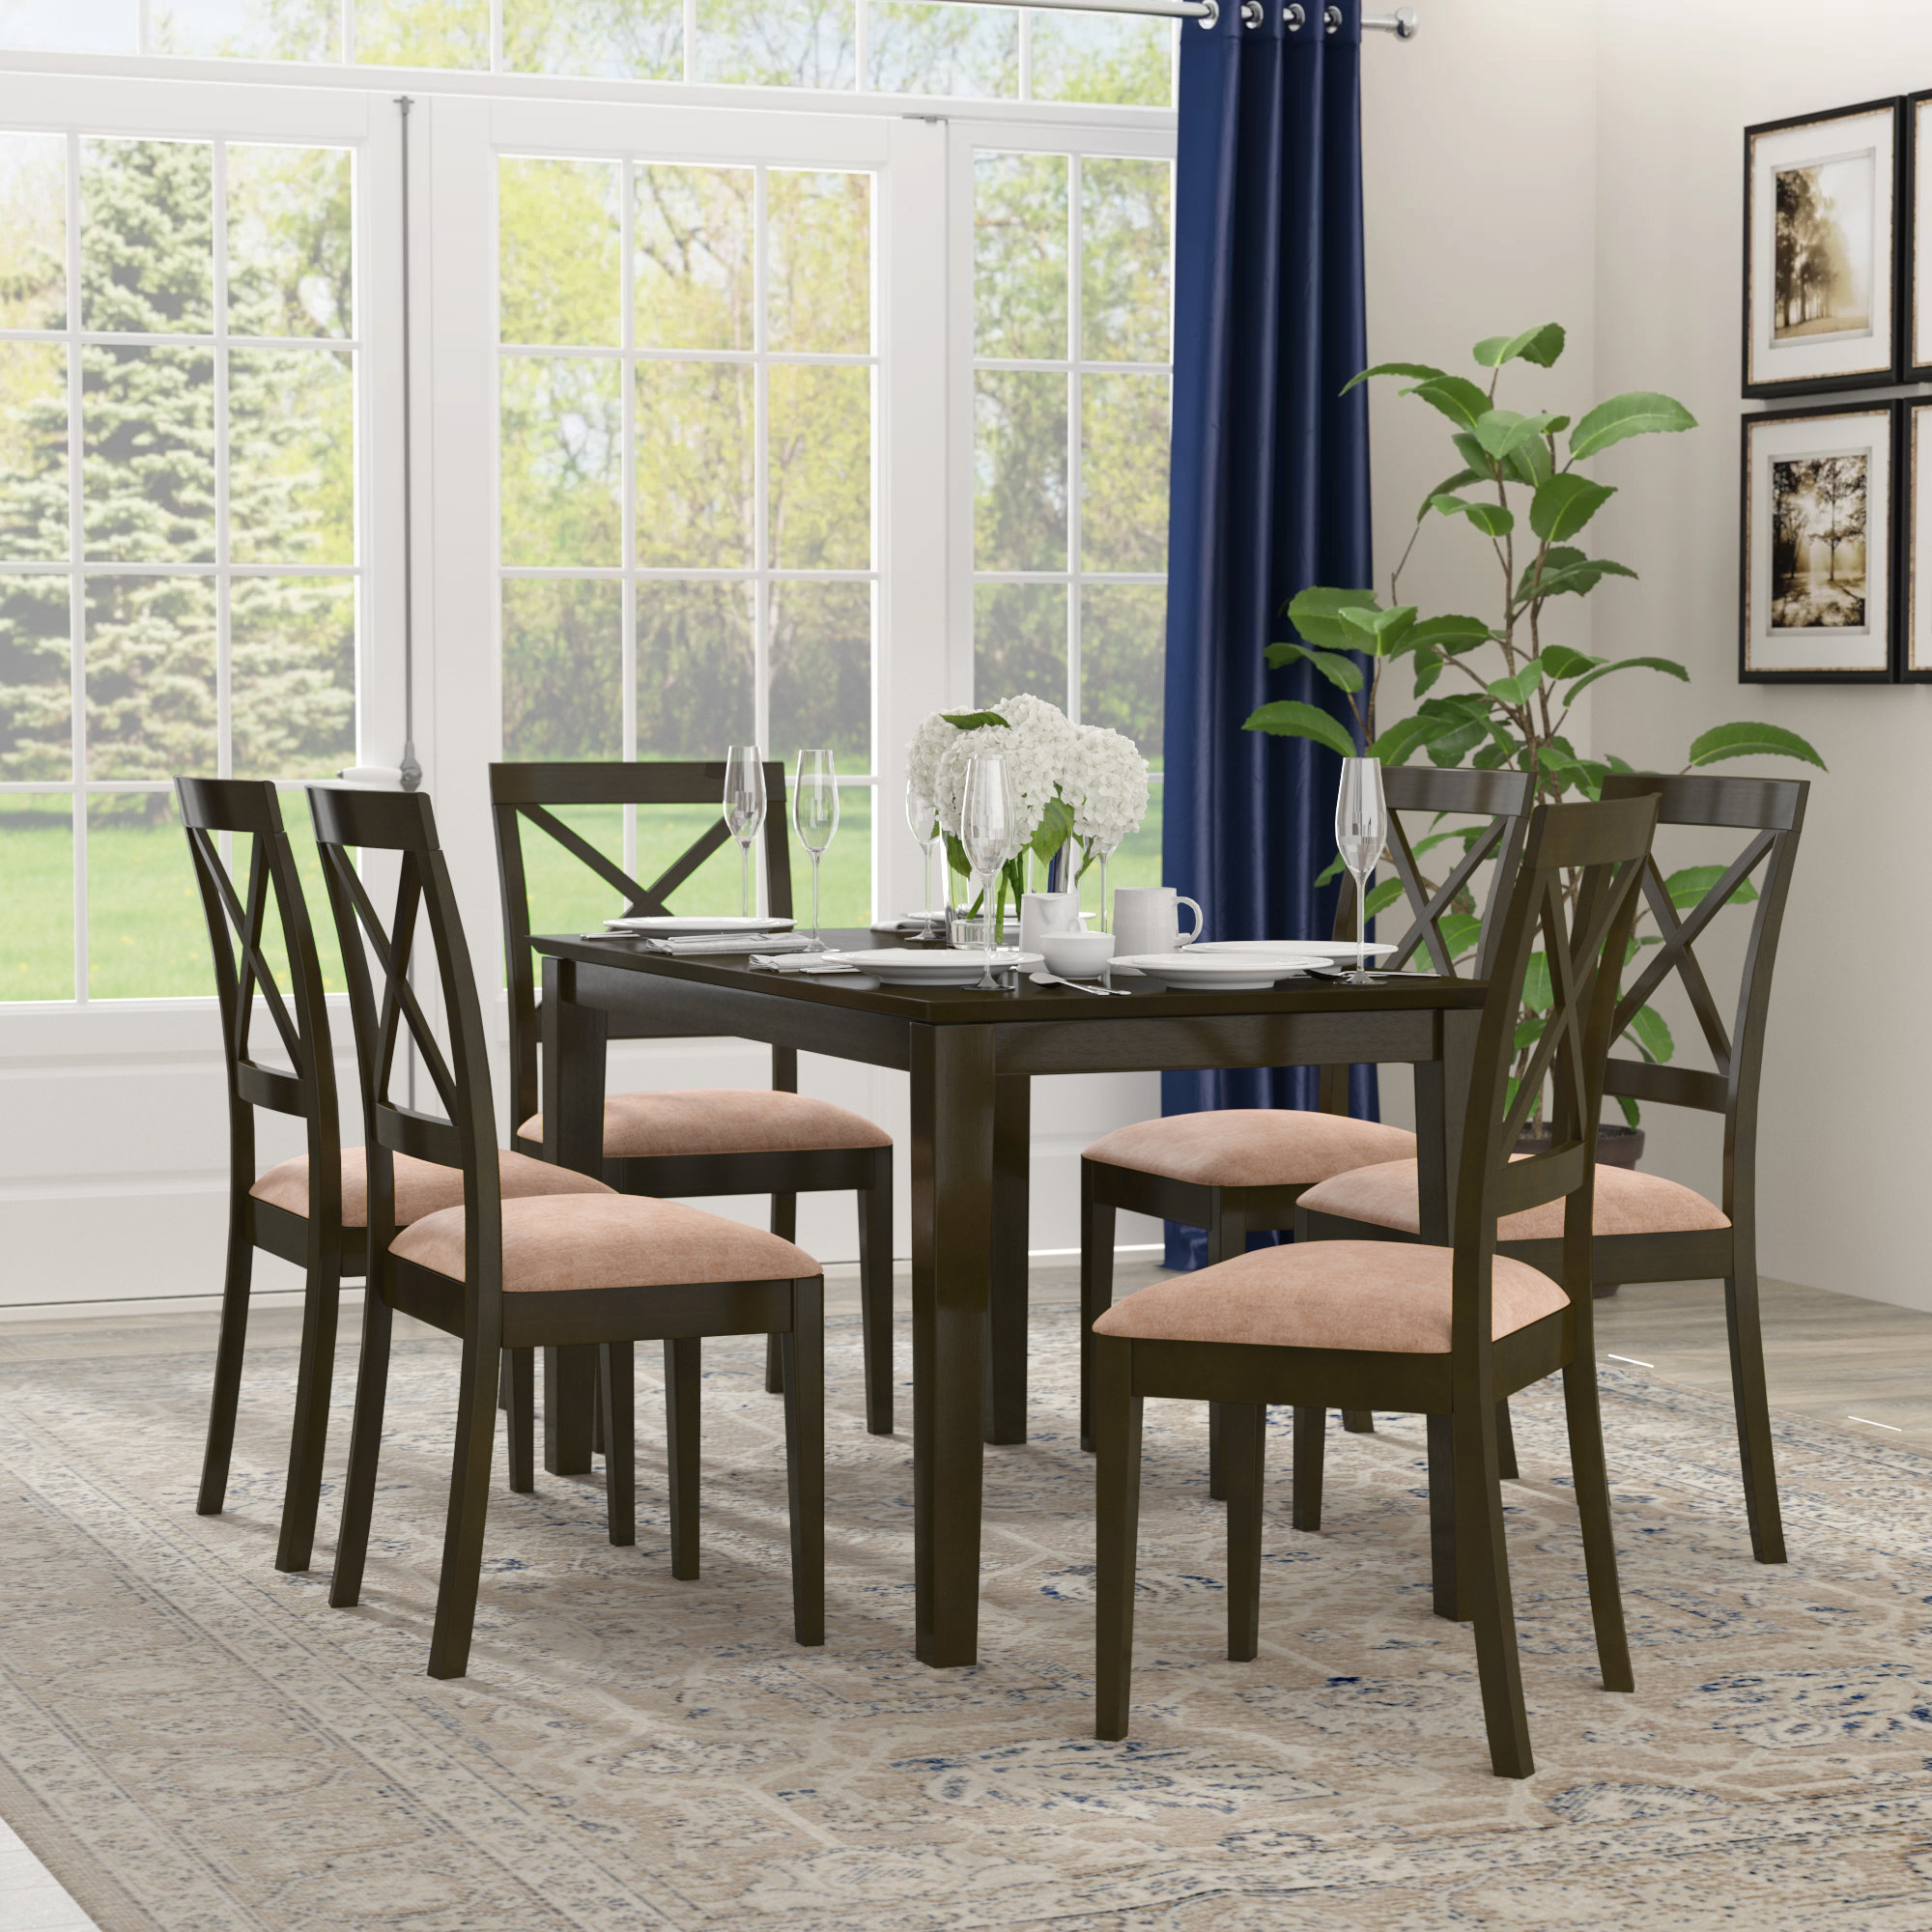 Current Smyrna Microfiber Upholstery 7 Piece Dining Set With Regard To Smyrna 3 Piece Dining Sets (Gallery 3 of 20)